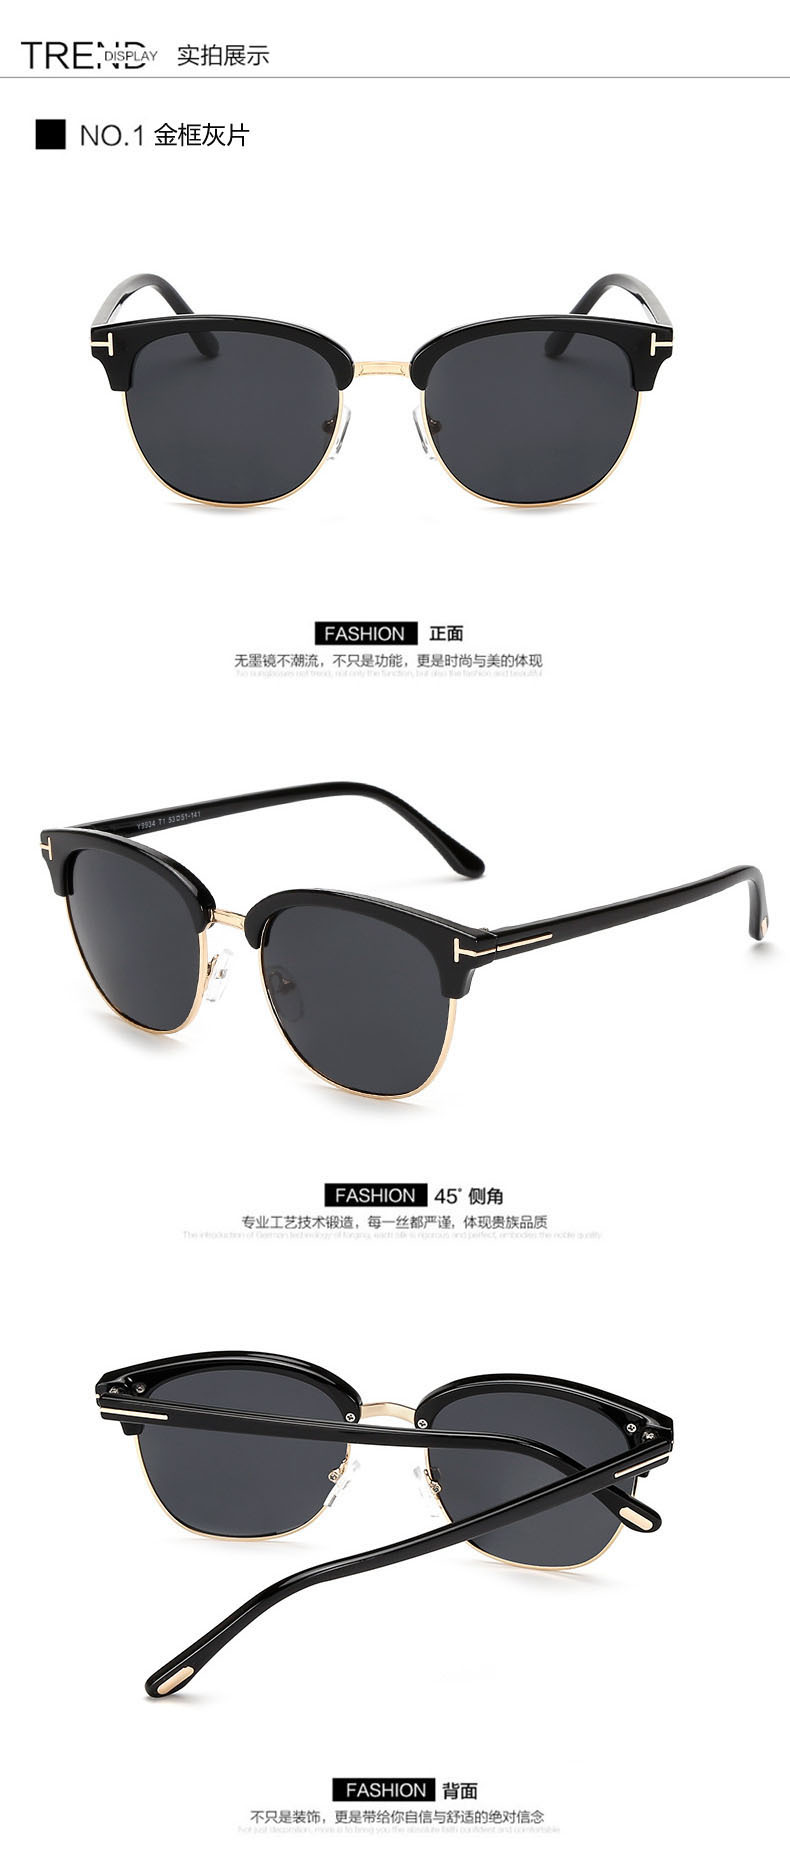 6b305f0c3d 2017 new polarized sunglasses women fashion tide people sunglasses star  with the same T-shaped